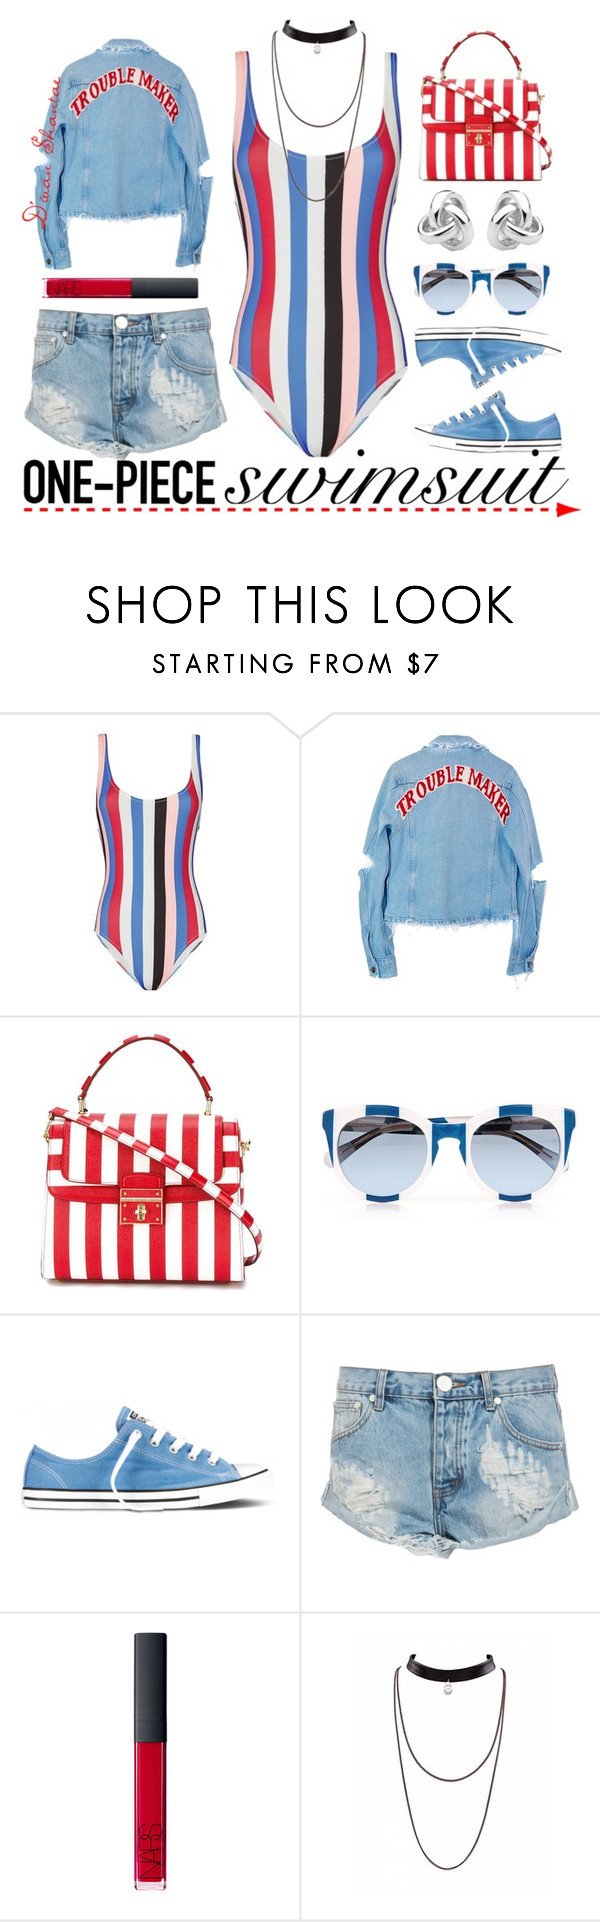 """""""Get The Look: Swimsuit Edition"""" by adswil ❤ liked on Polyvore featuring Solid & Striped, Dolce&Gabbana, Converse, One Teaspoon, NARS Cosmetics, Georgini, GetTheLook, summerstyle and Swimsuits"""